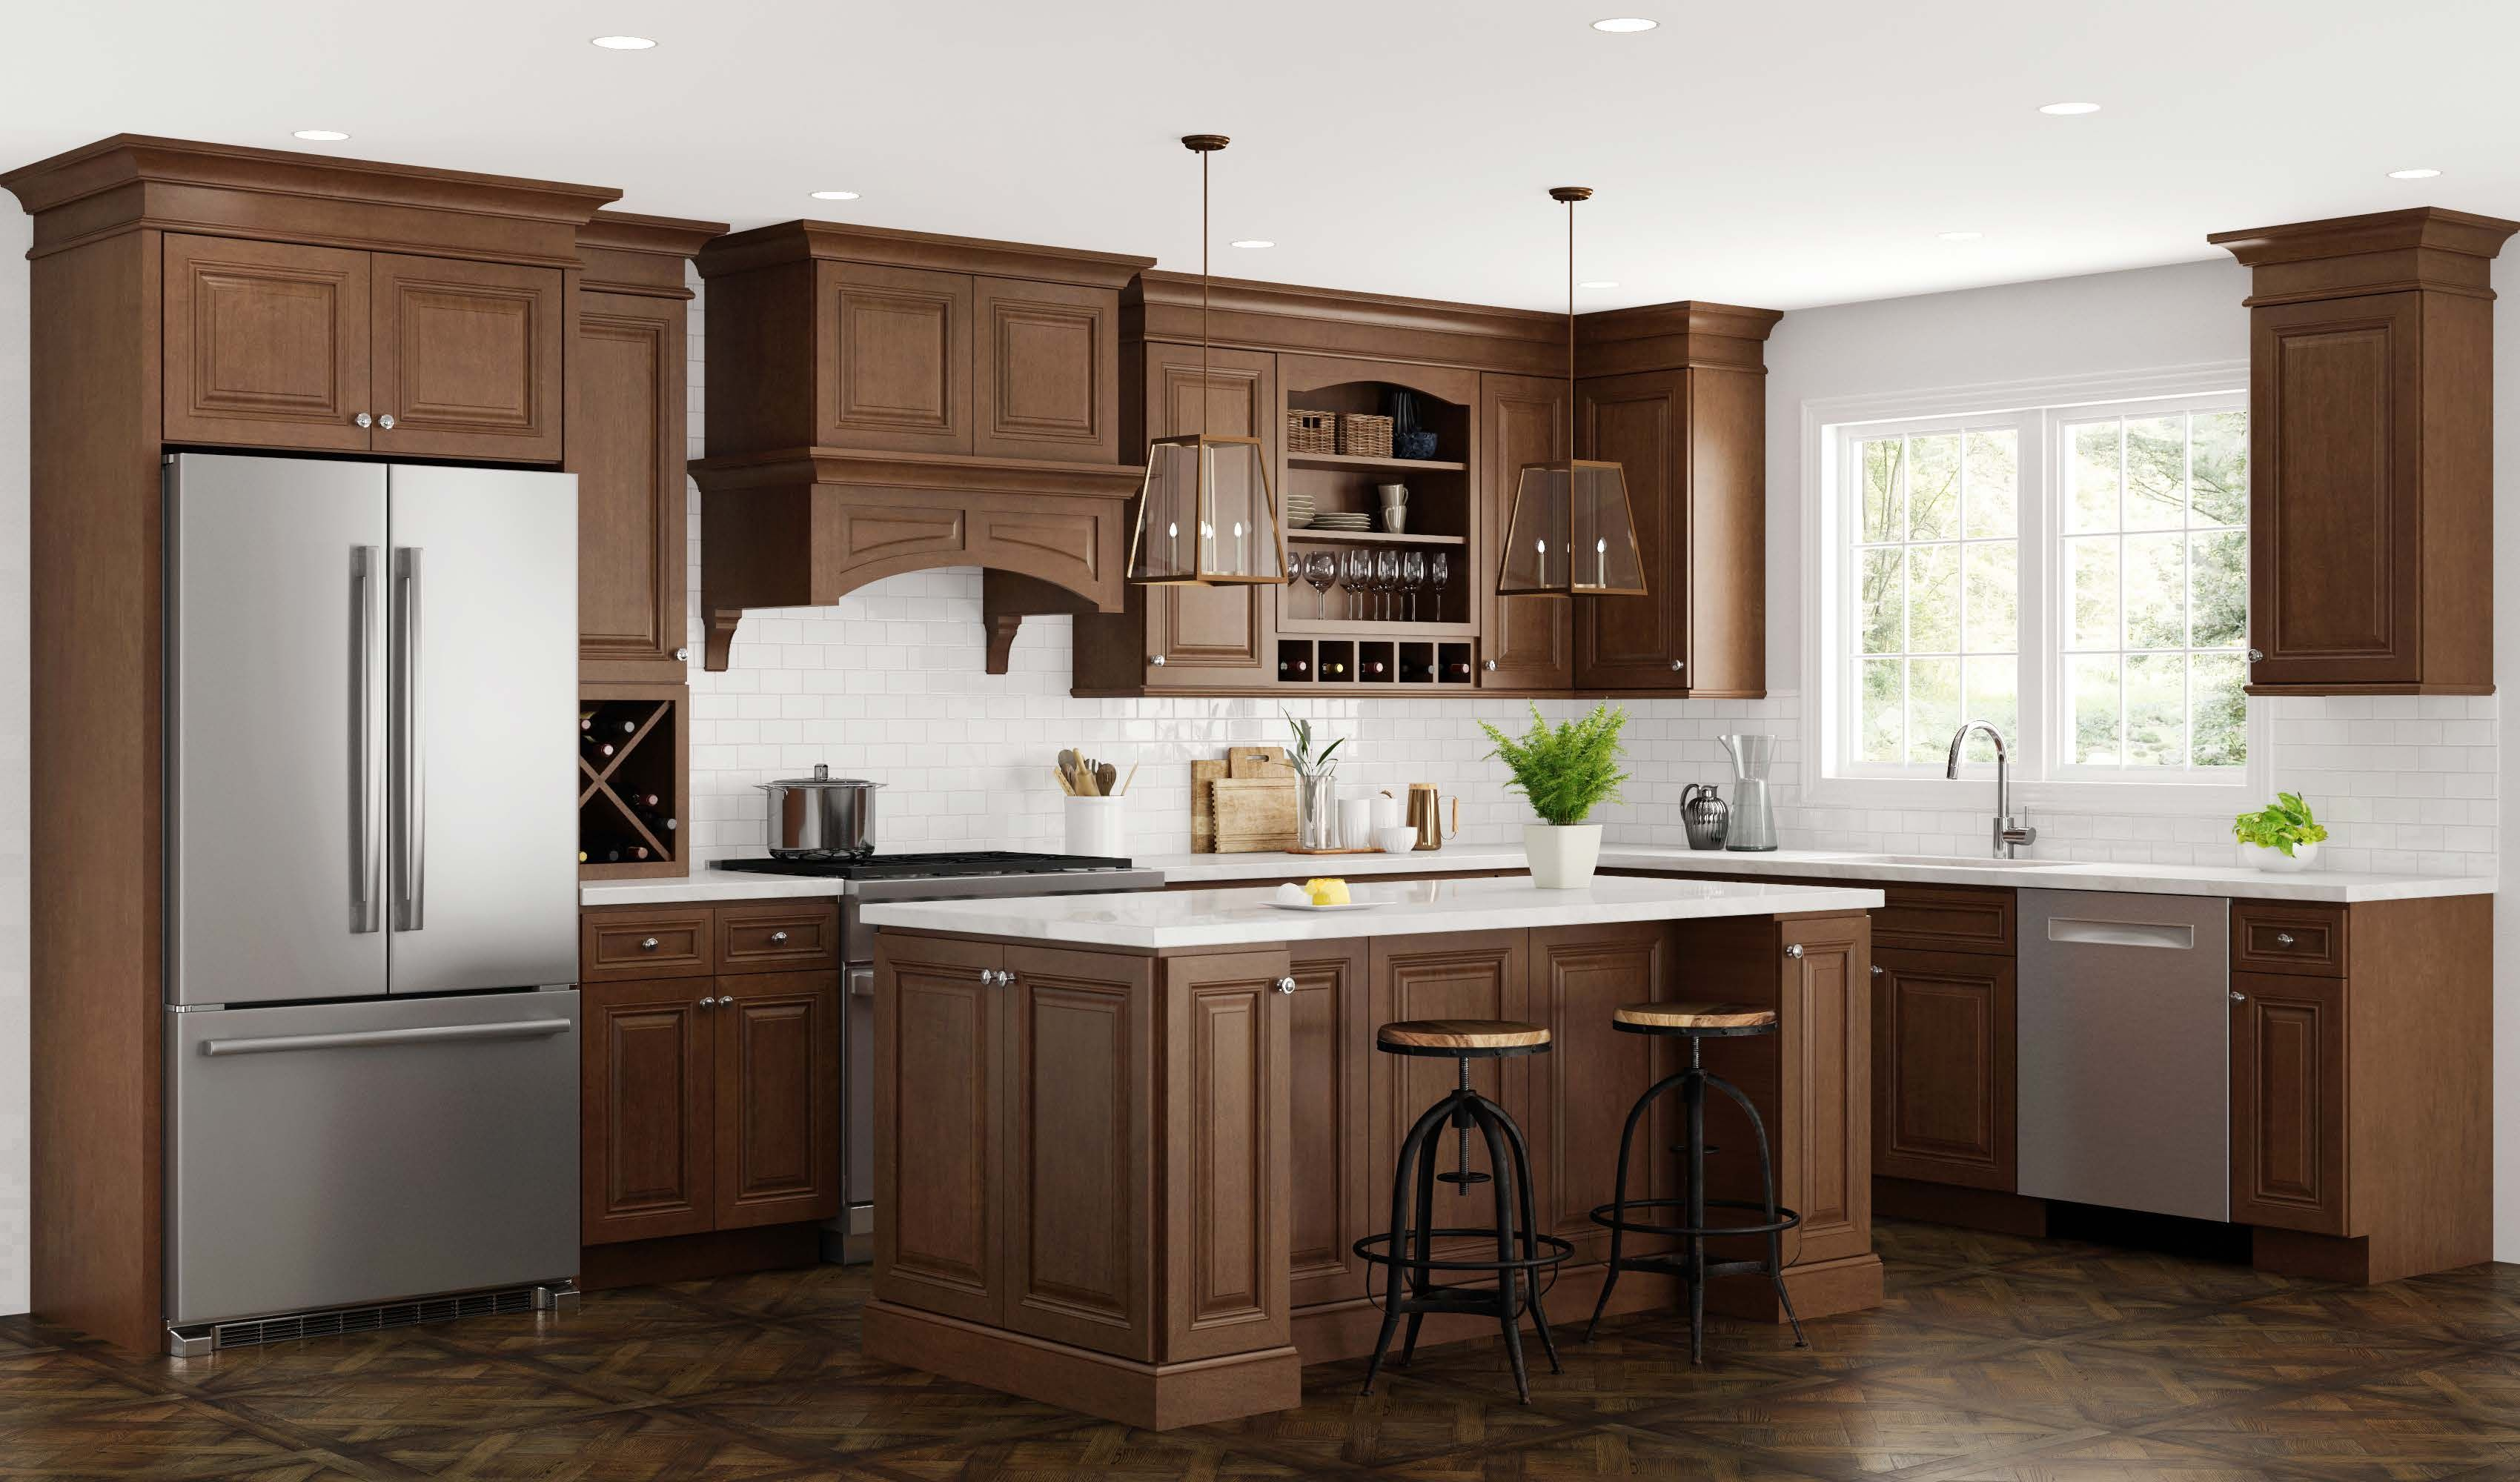 Introducing The New Cinnamon Stain For 2018 Cinnamon Stain Provides Depth And War Buy Kitchen Cabinets Online Brown Kitchen Cabinets Online Kitchen Cabinets